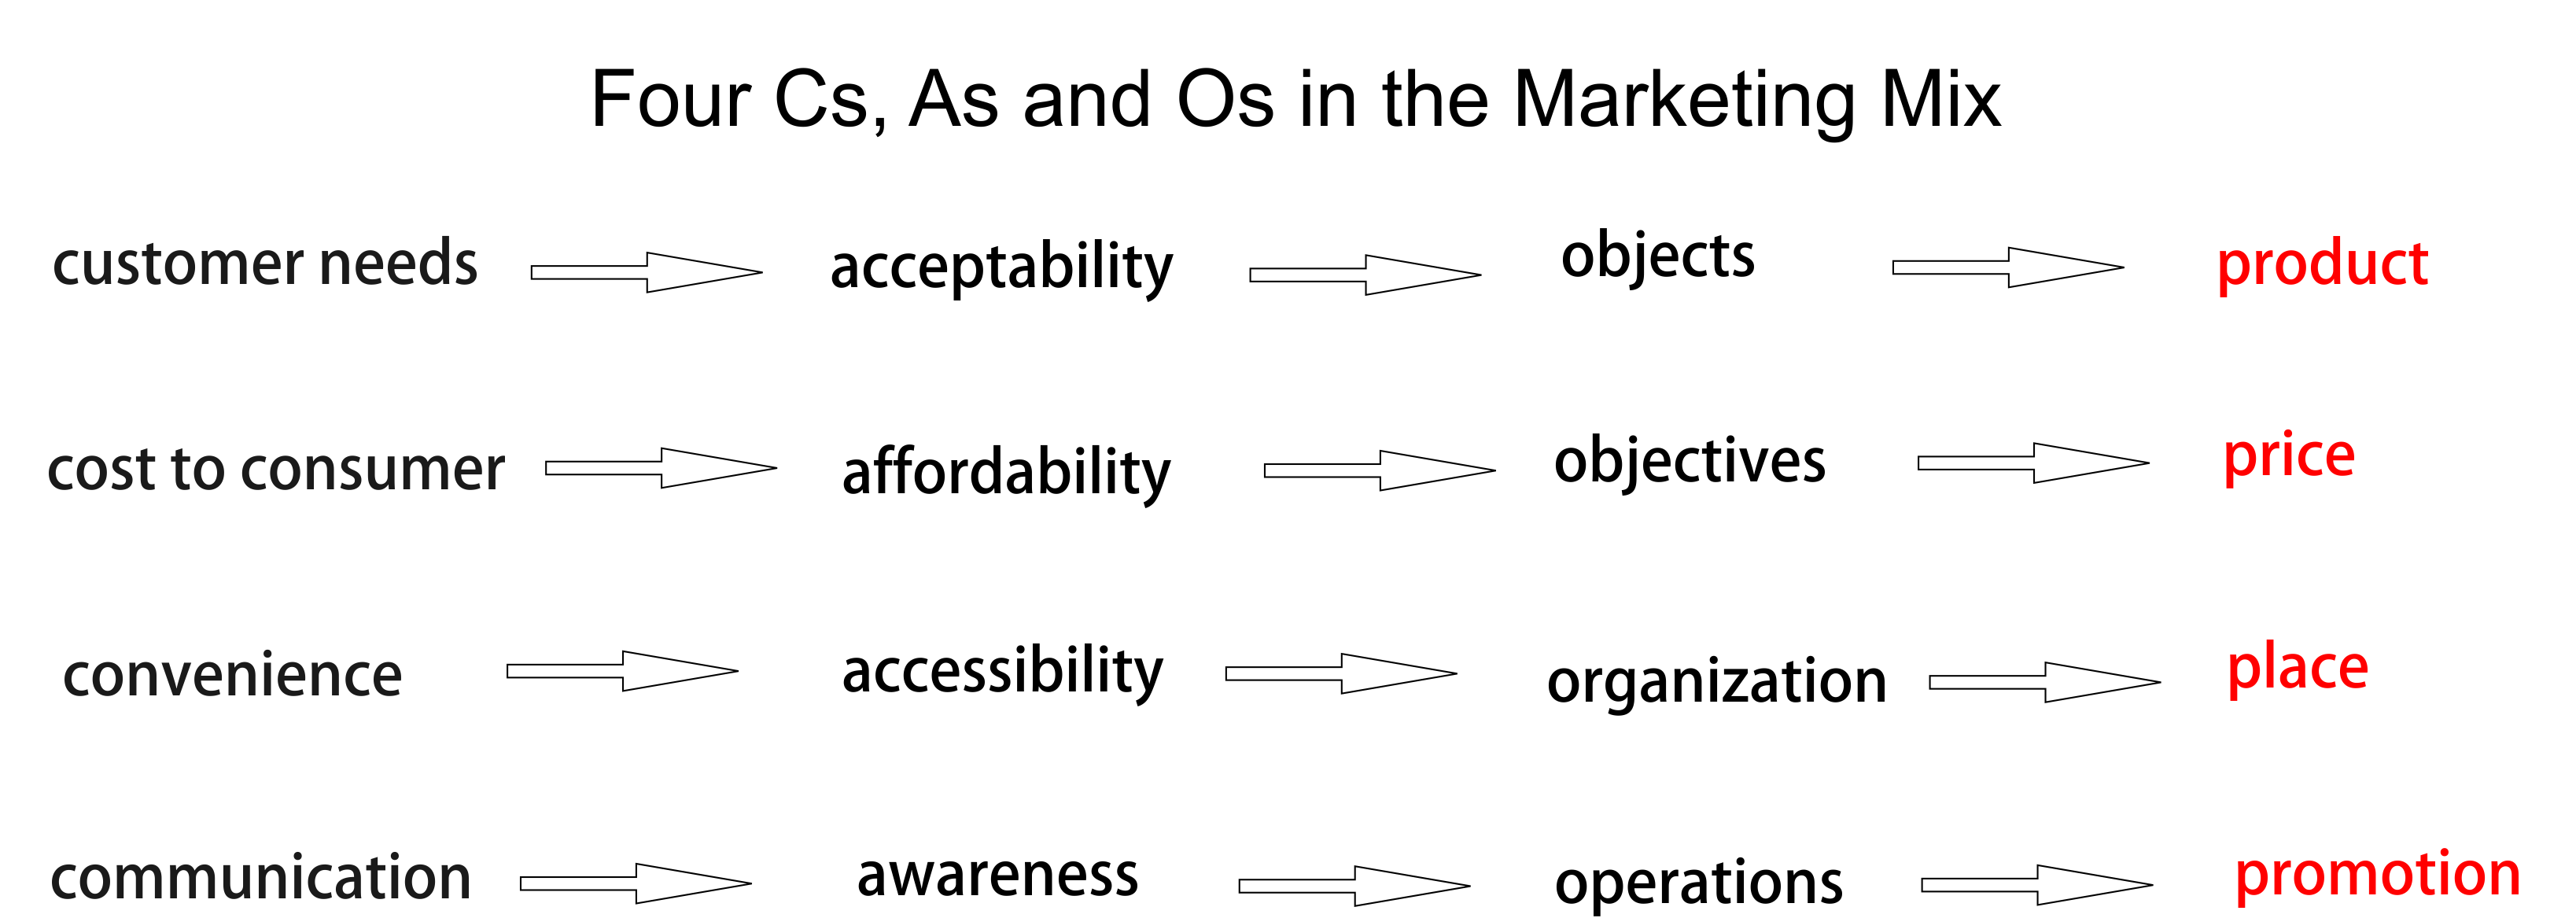 http://haunty.hubpages.com/hub/What-is-the-Marketing-Mix-The-Eight-Ps-Four-Cs-As-and-Os#